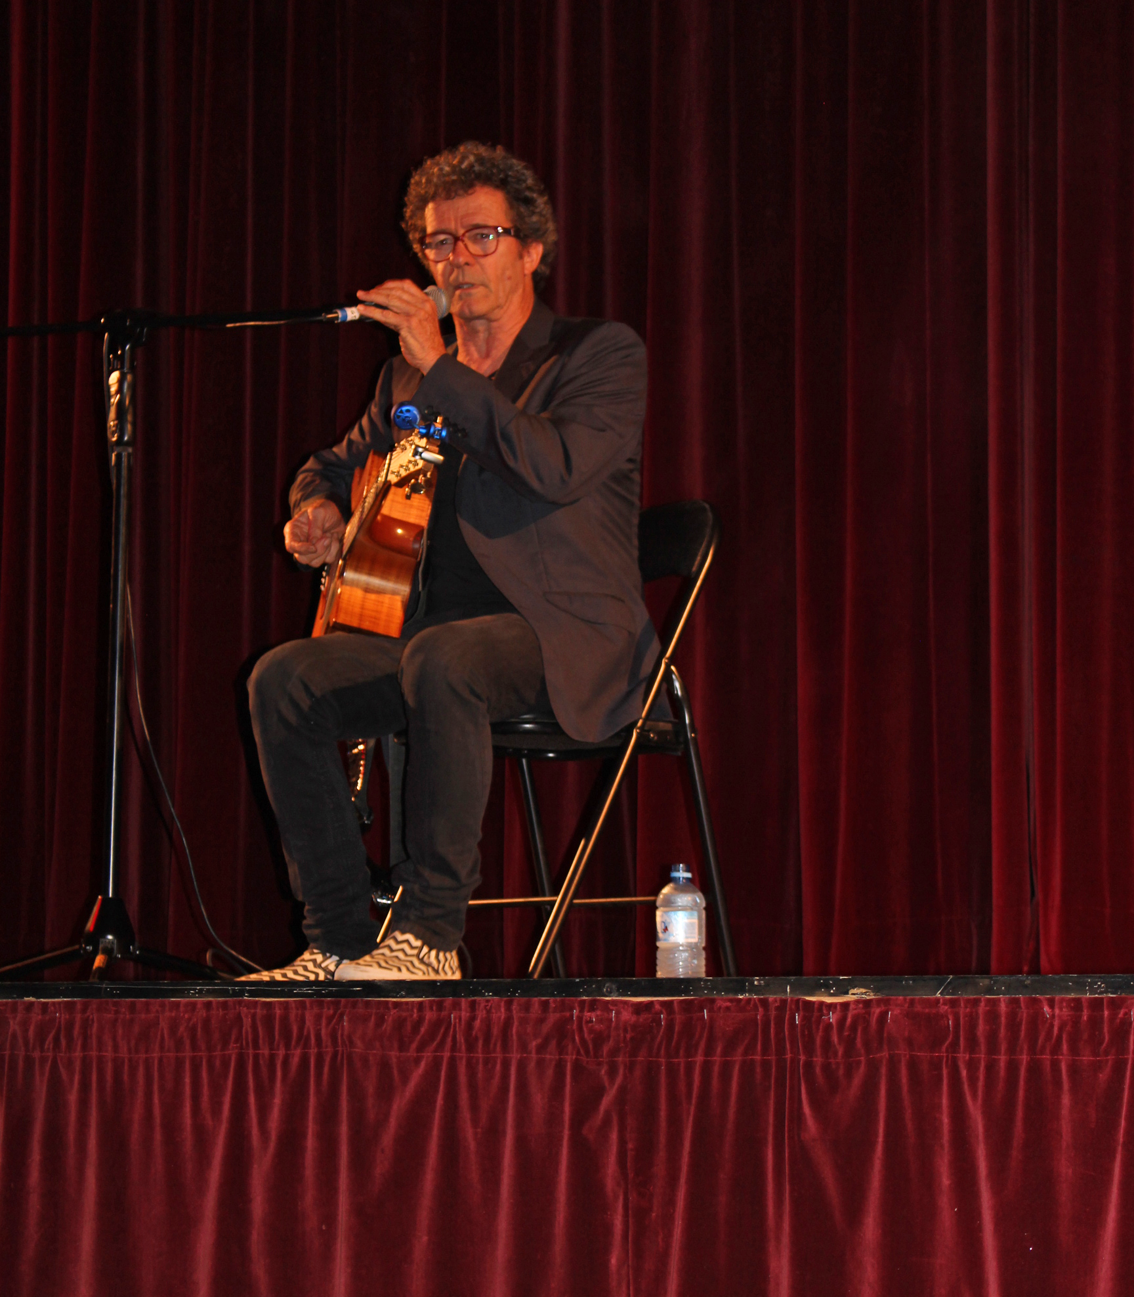 beyondblue Ambassador Mark Gable shared his story and performed at Avoca Beach Picture Theatre.